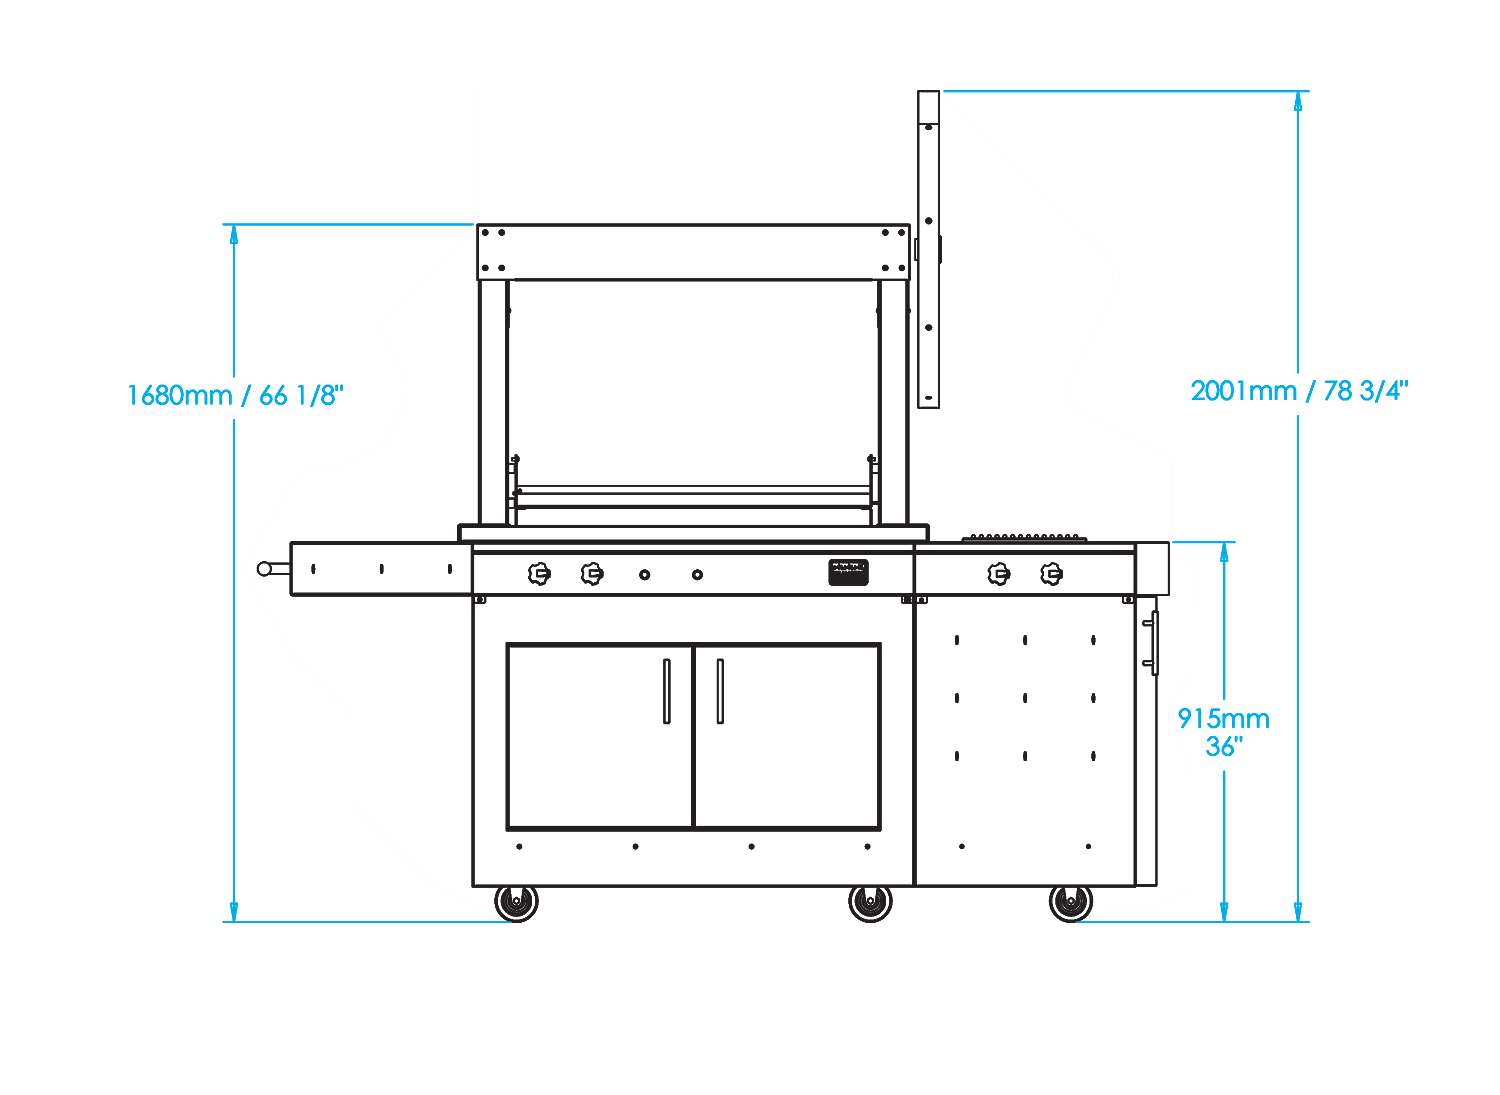 K750 Freestanding Gaucho Grill with Side Burner Dimensions Image